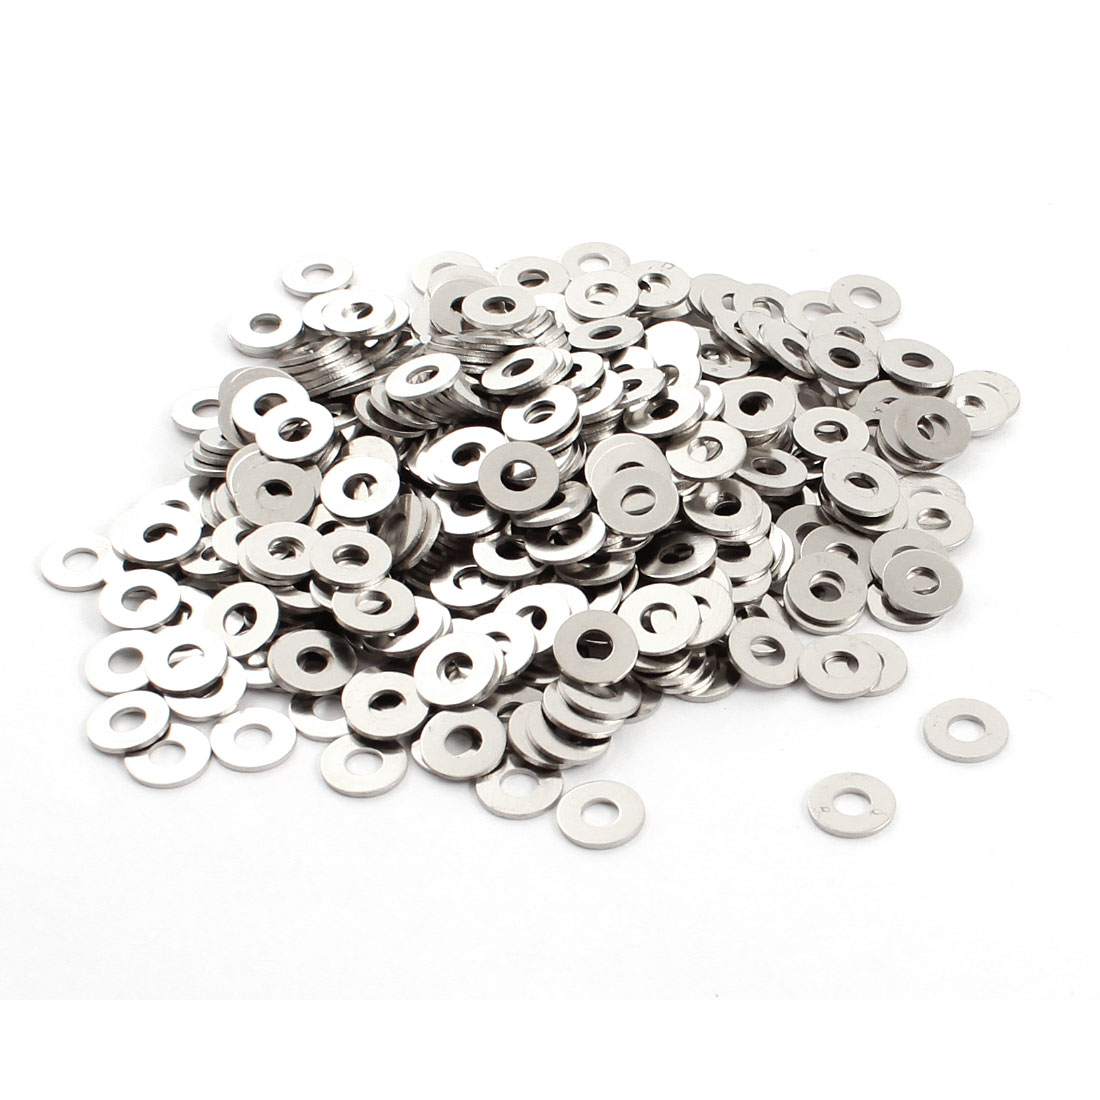 500Pcs 3mm x 8mm x 0.6mm Round Metal Washer Spacer Fasteners